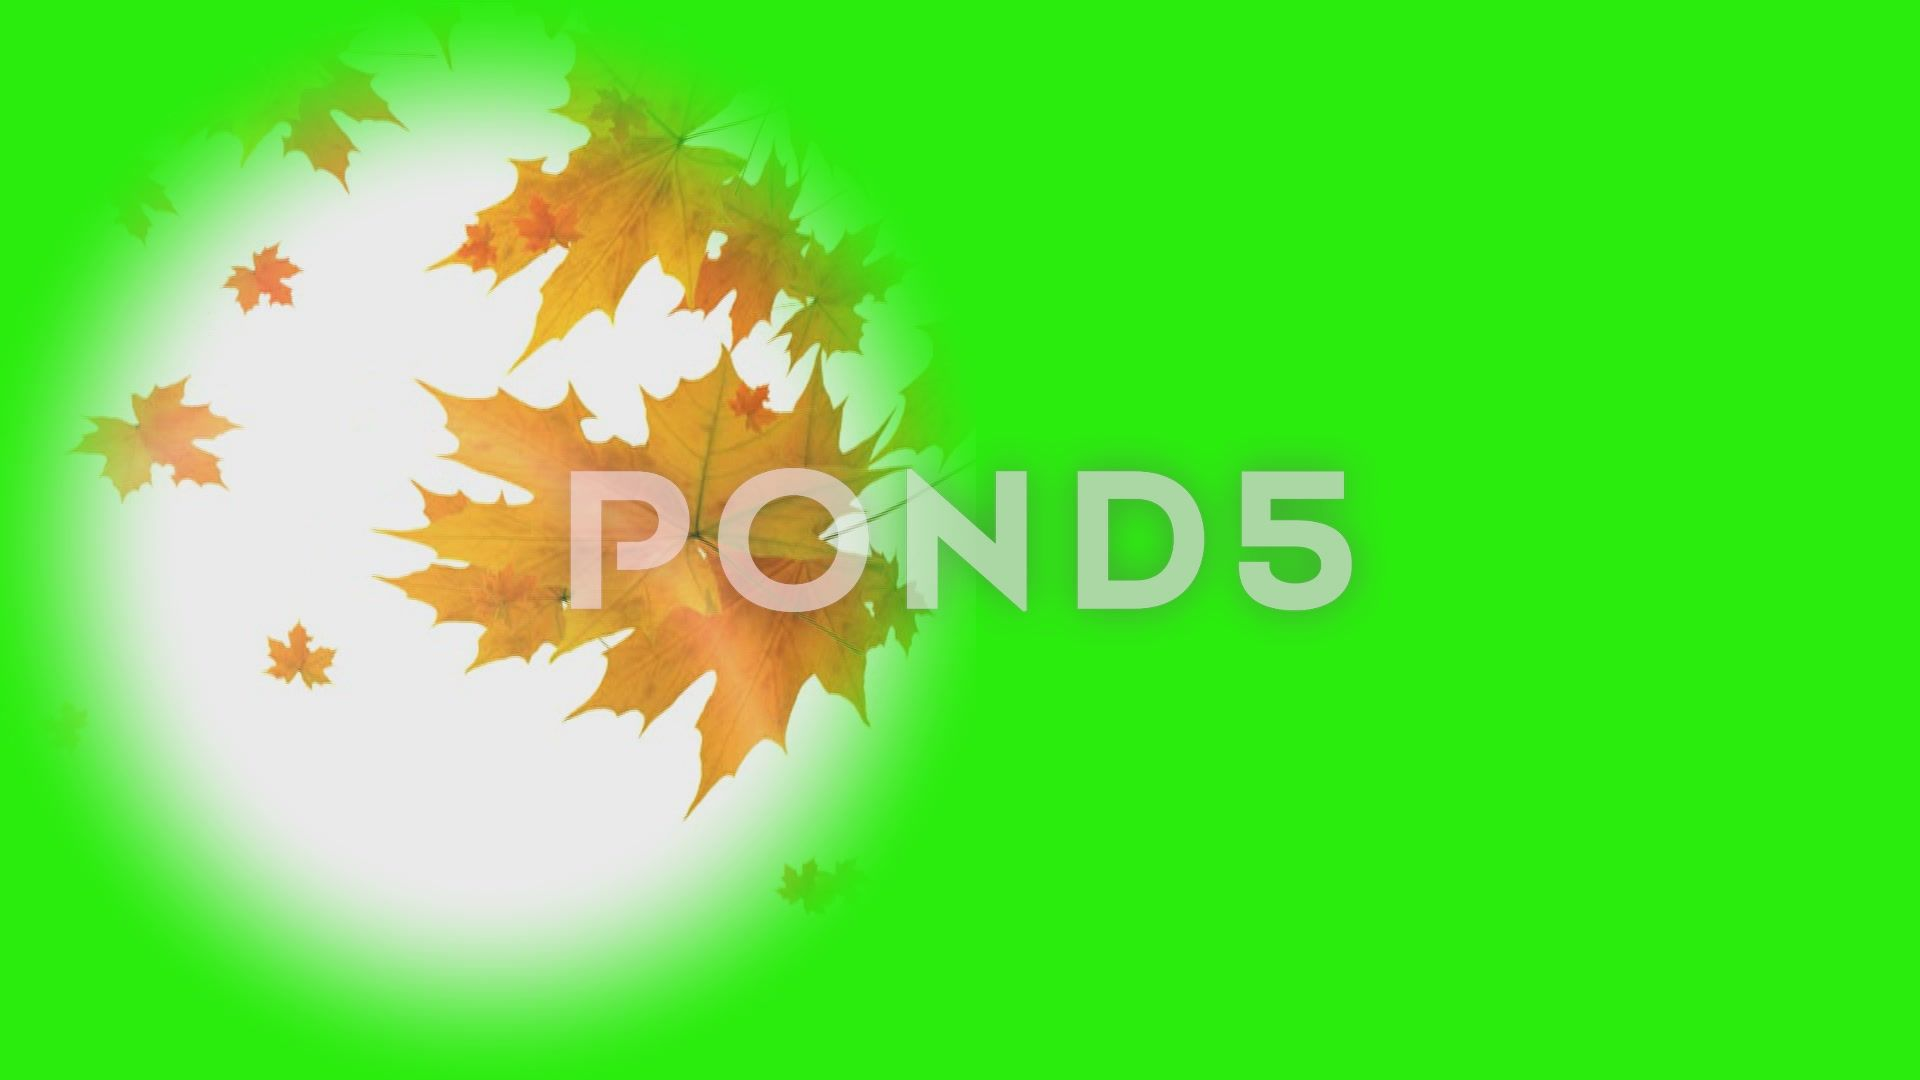 Falling Leaves Mask On A Green Screen Stock Footage Ad Mask Leaves Falling Green Greenscreen Autumn Leaves Green Screen Backgrounds